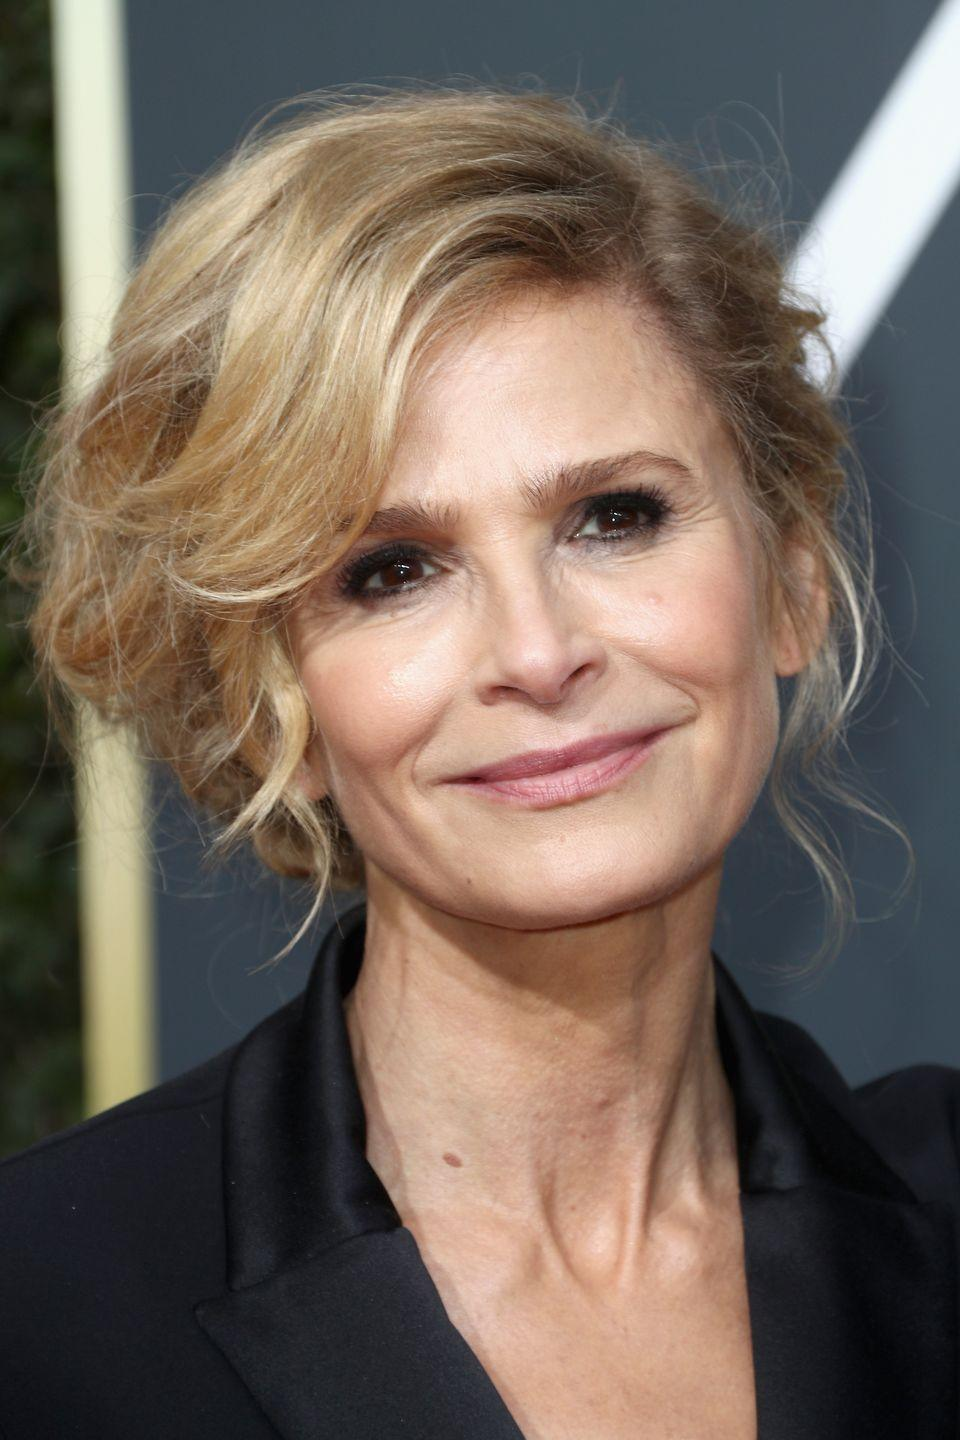 """<p>Kyra Sedgwick's full side-swept bangs are a flattering way to prevent an <a href=""""https://www.goodhousekeeping.com/beauty/hair/tips/g1800/celebrity-hairstyles-updo/"""" rel=""""nofollow noopener"""" target=""""_blank"""" data-ylk=""""slk:updo"""" class=""""link rapid-noclick-resp"""">updo</a> from looking severe.</p>"""